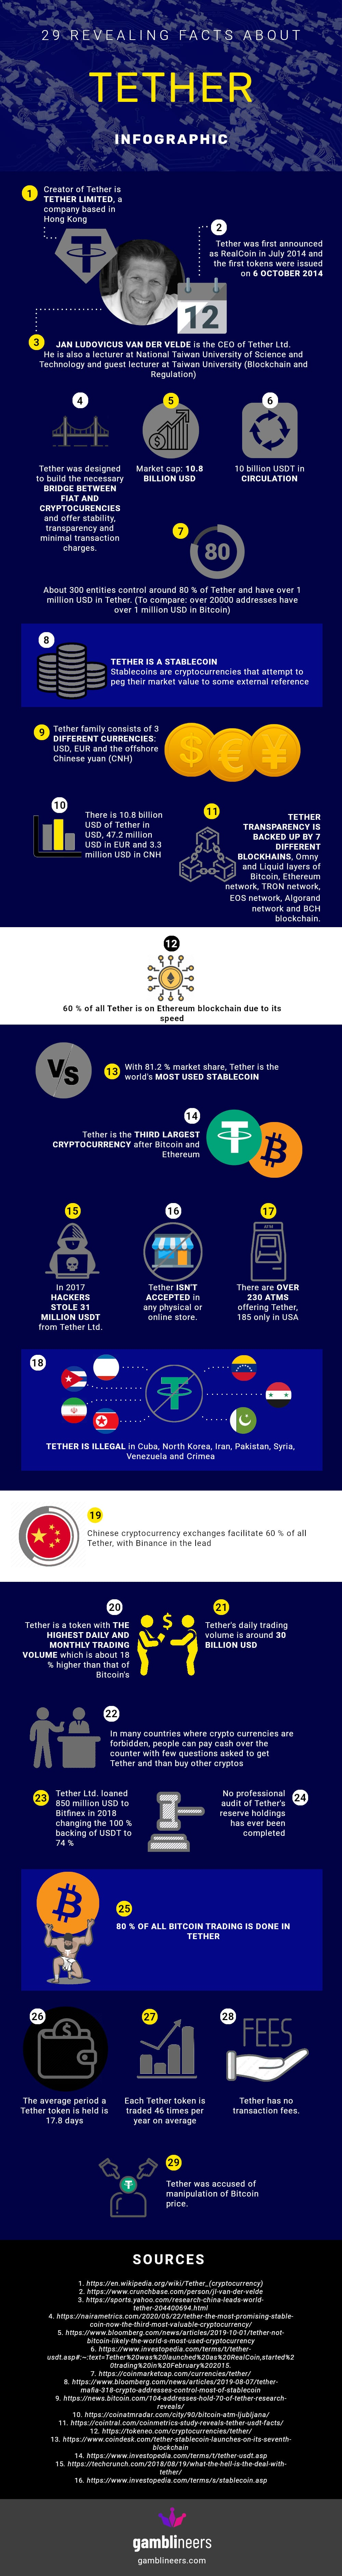 Tether Infographic: 29 Revealing Facts About Tether